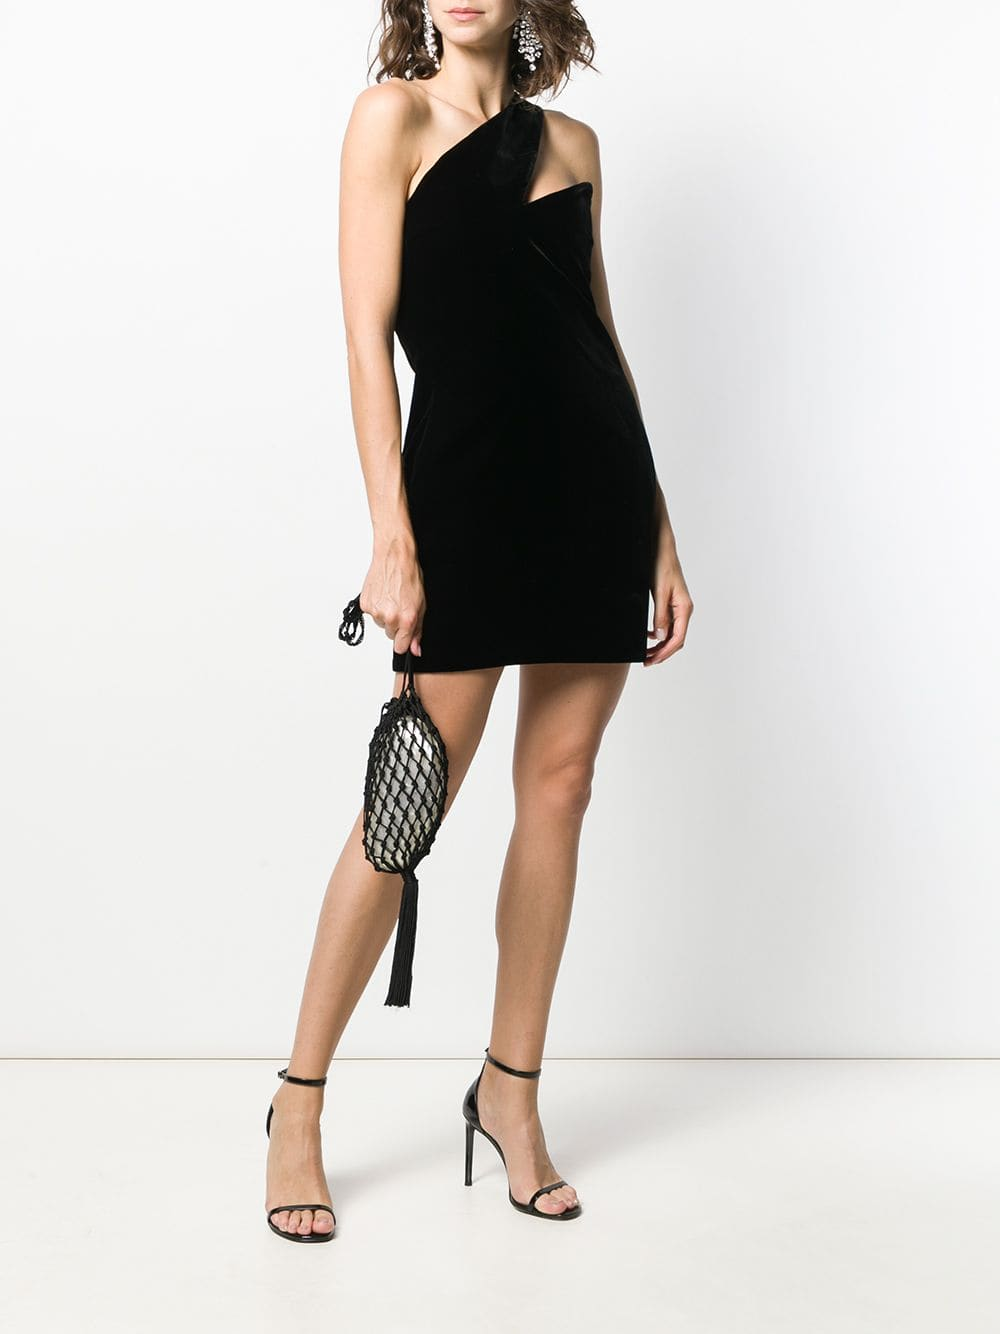 SAINT LAURENT One Shoulder Mini Dress